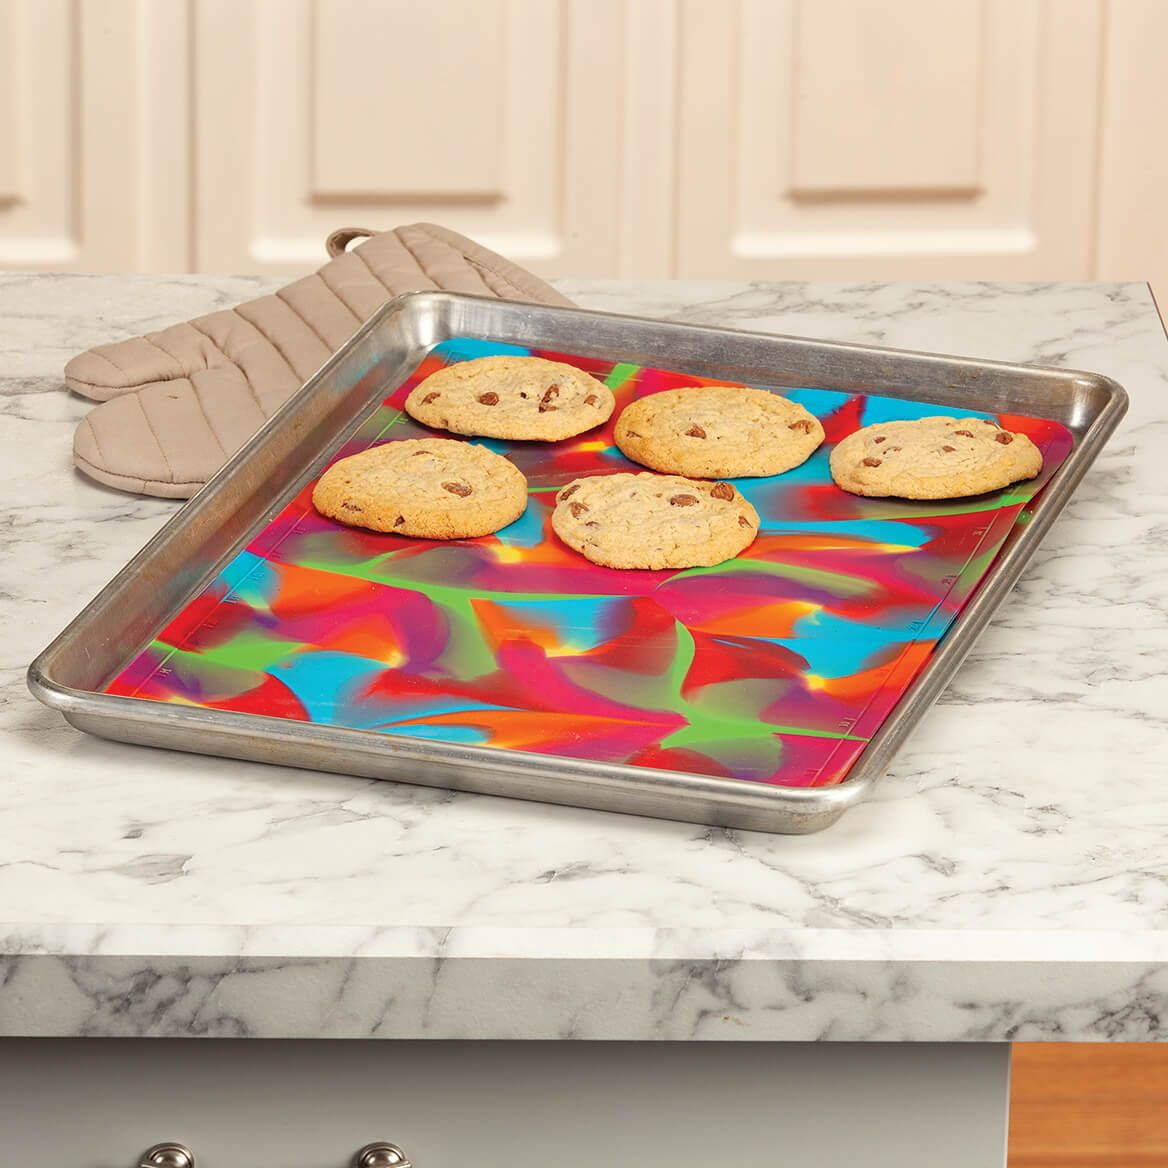 Colorful Silicone 2 Sided Baking Mat-371277